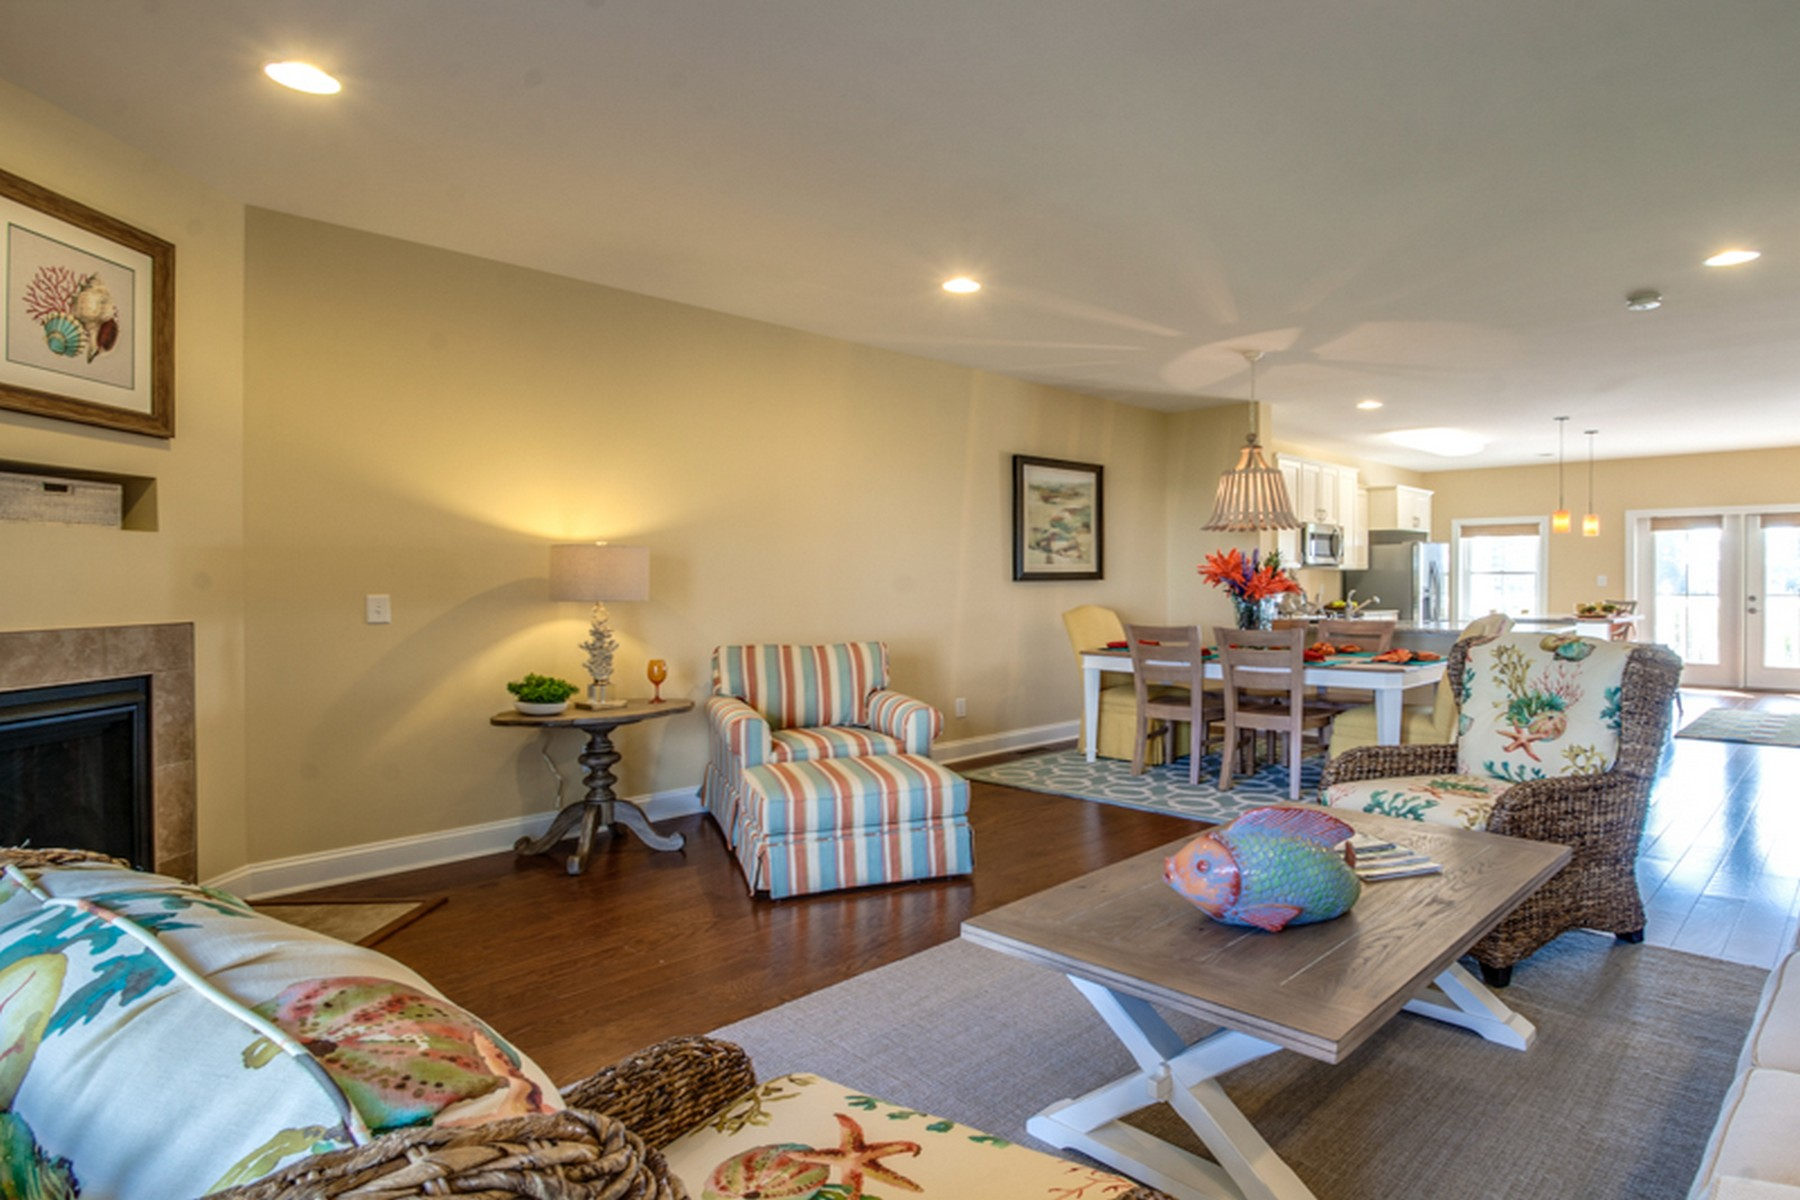 Additional photo for property listing at 37676 Sandy Trap Drive , 902, Ocean View, DE 19970 37676  Sandy Trap Drive 902, 奥切安, 特拉华州 19970 美国